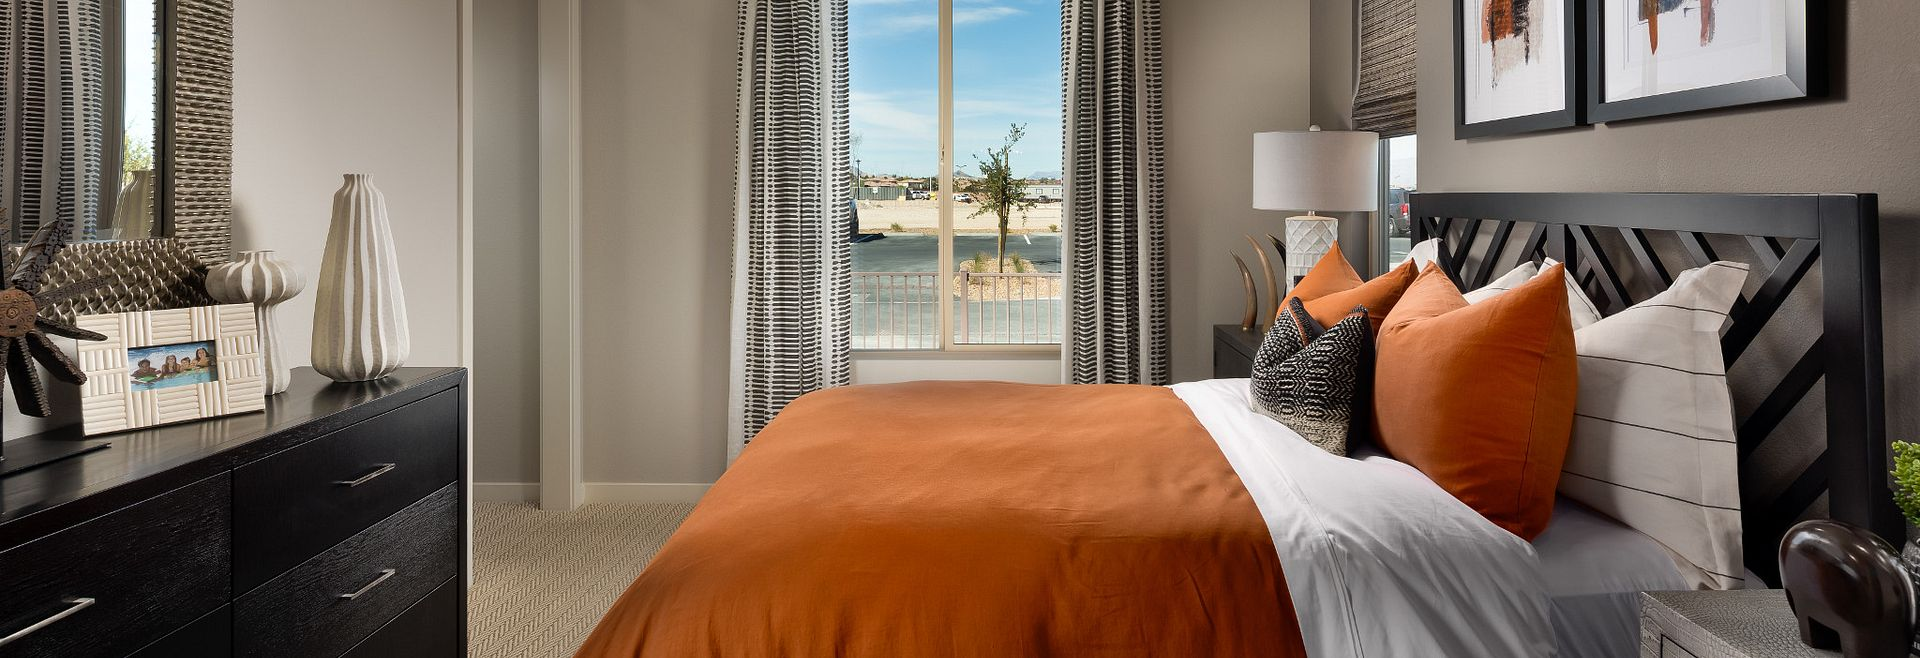 Trilogy Summerlin Haven Guest Room